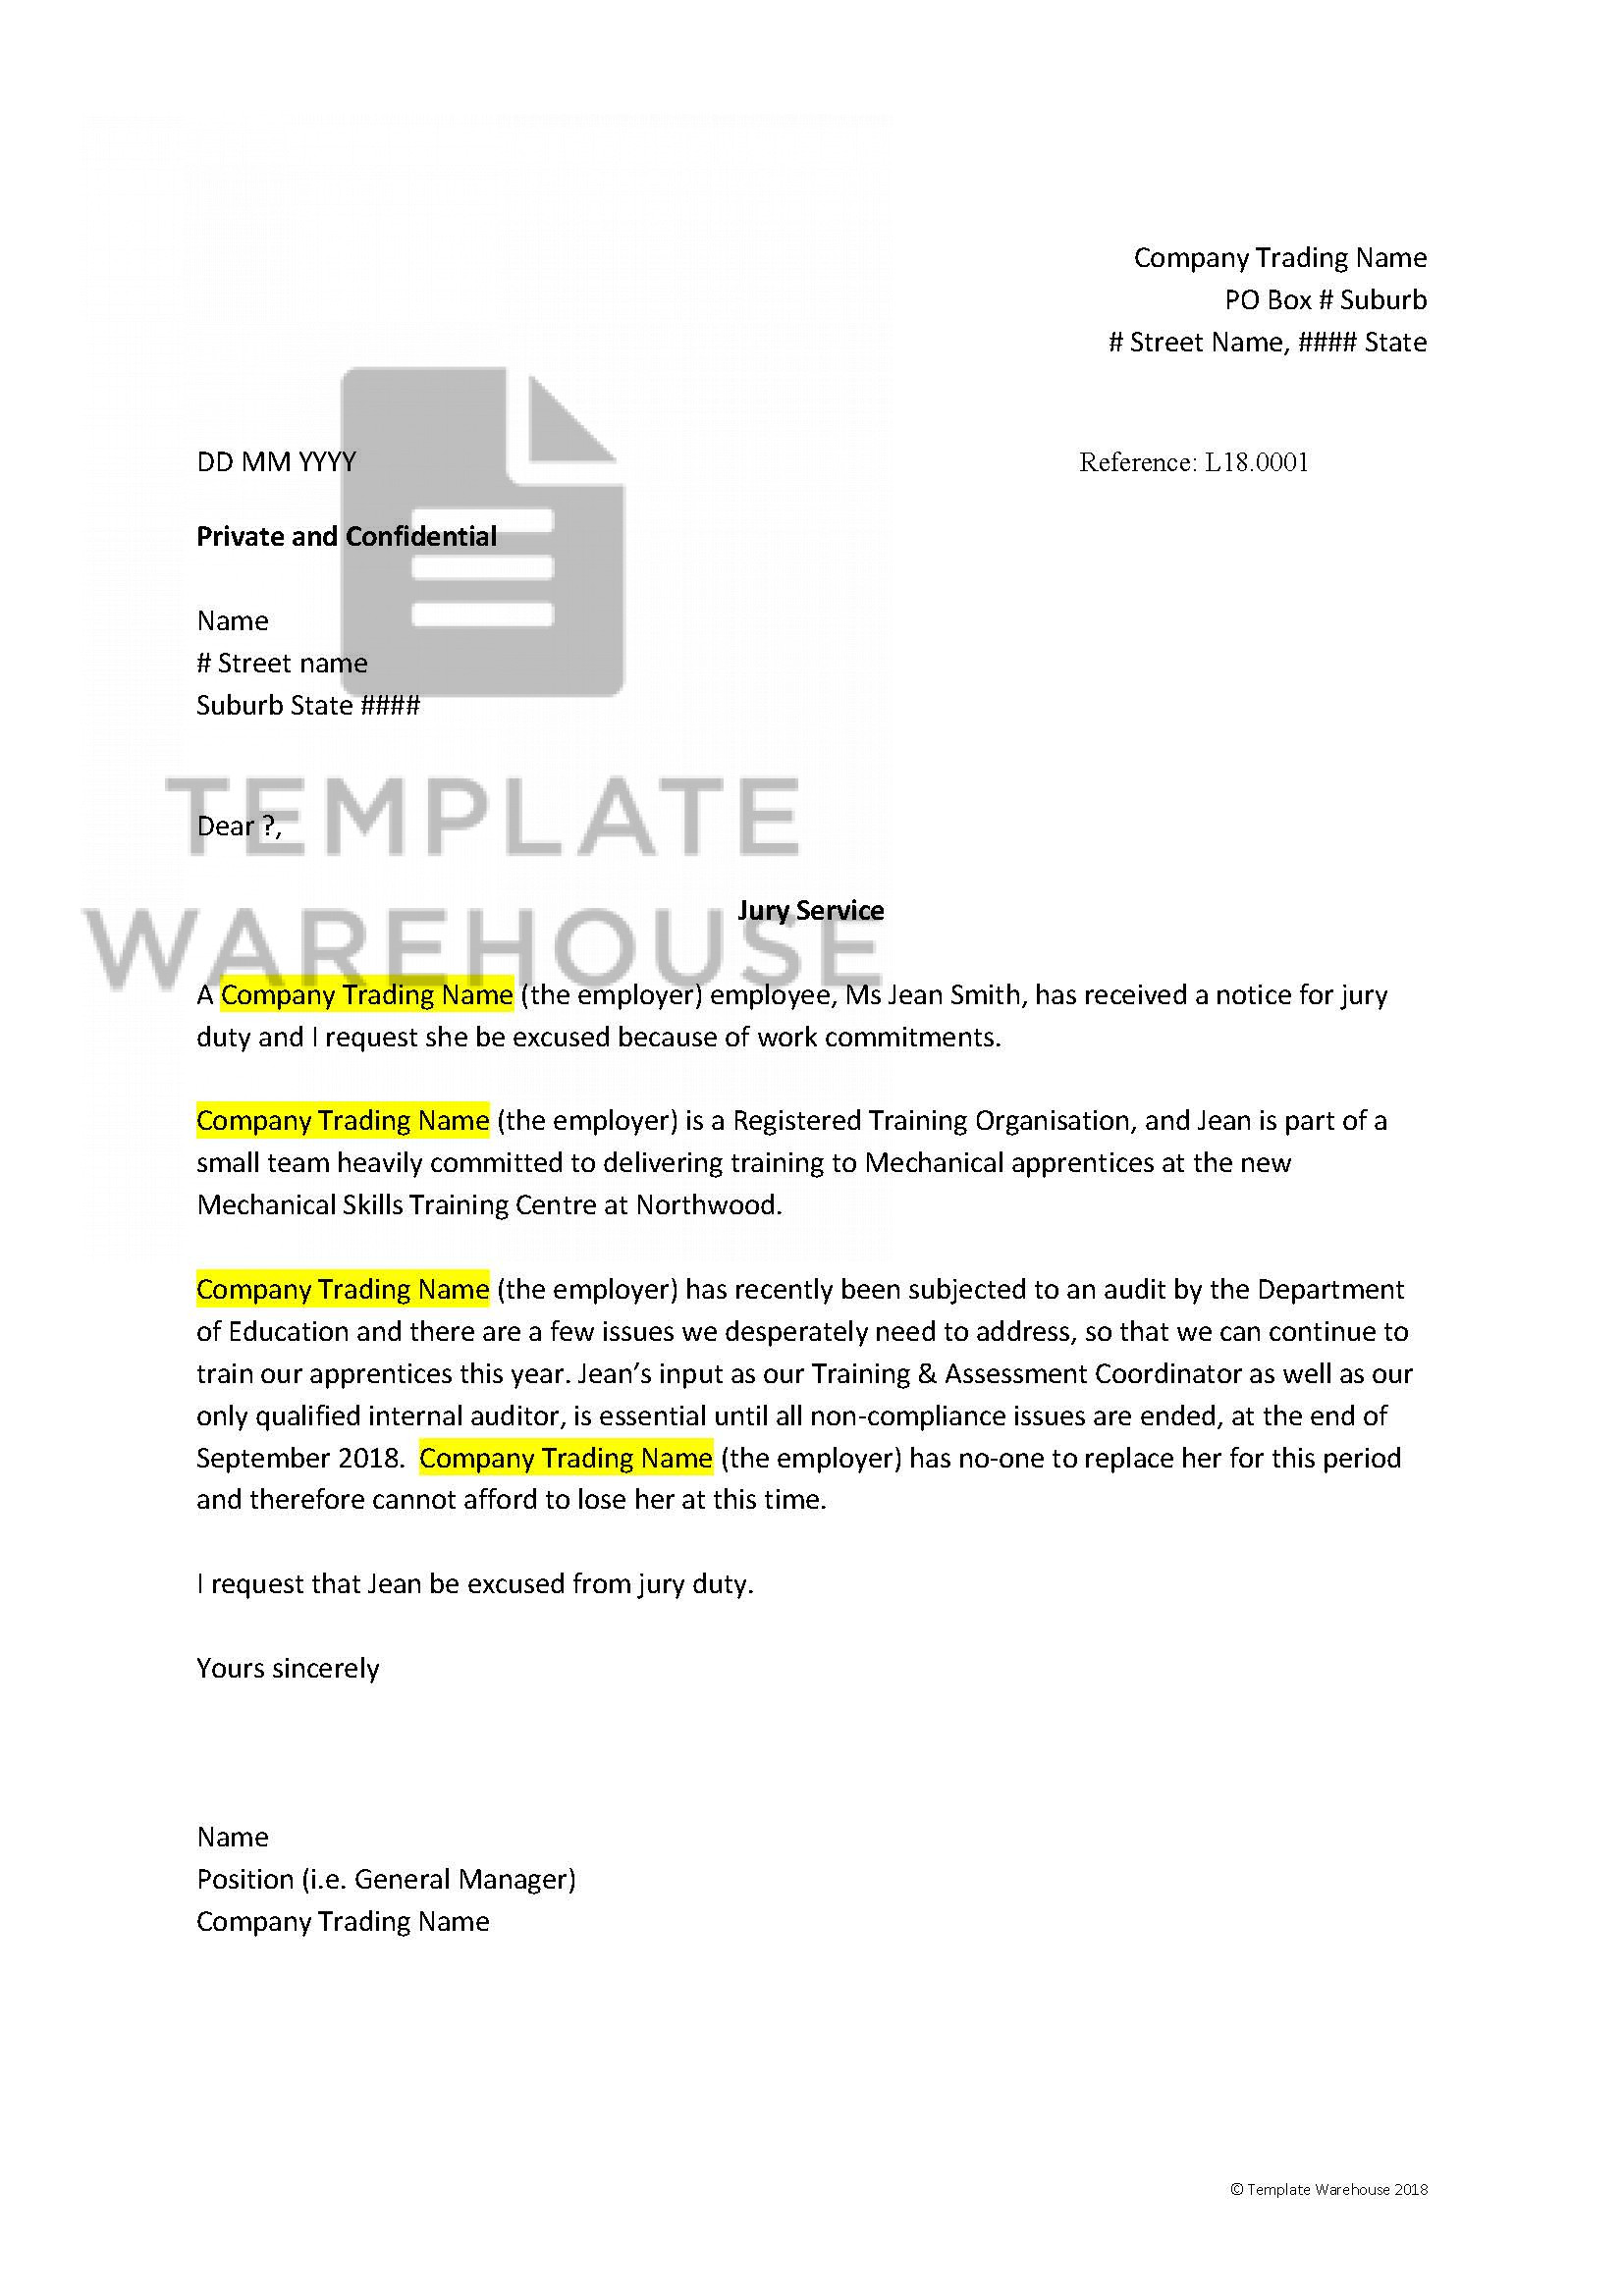 Sample Letter Asking To Be Excused From Jury Duty.Hrm 03 005 Request Excused From Jury Service Letter 1